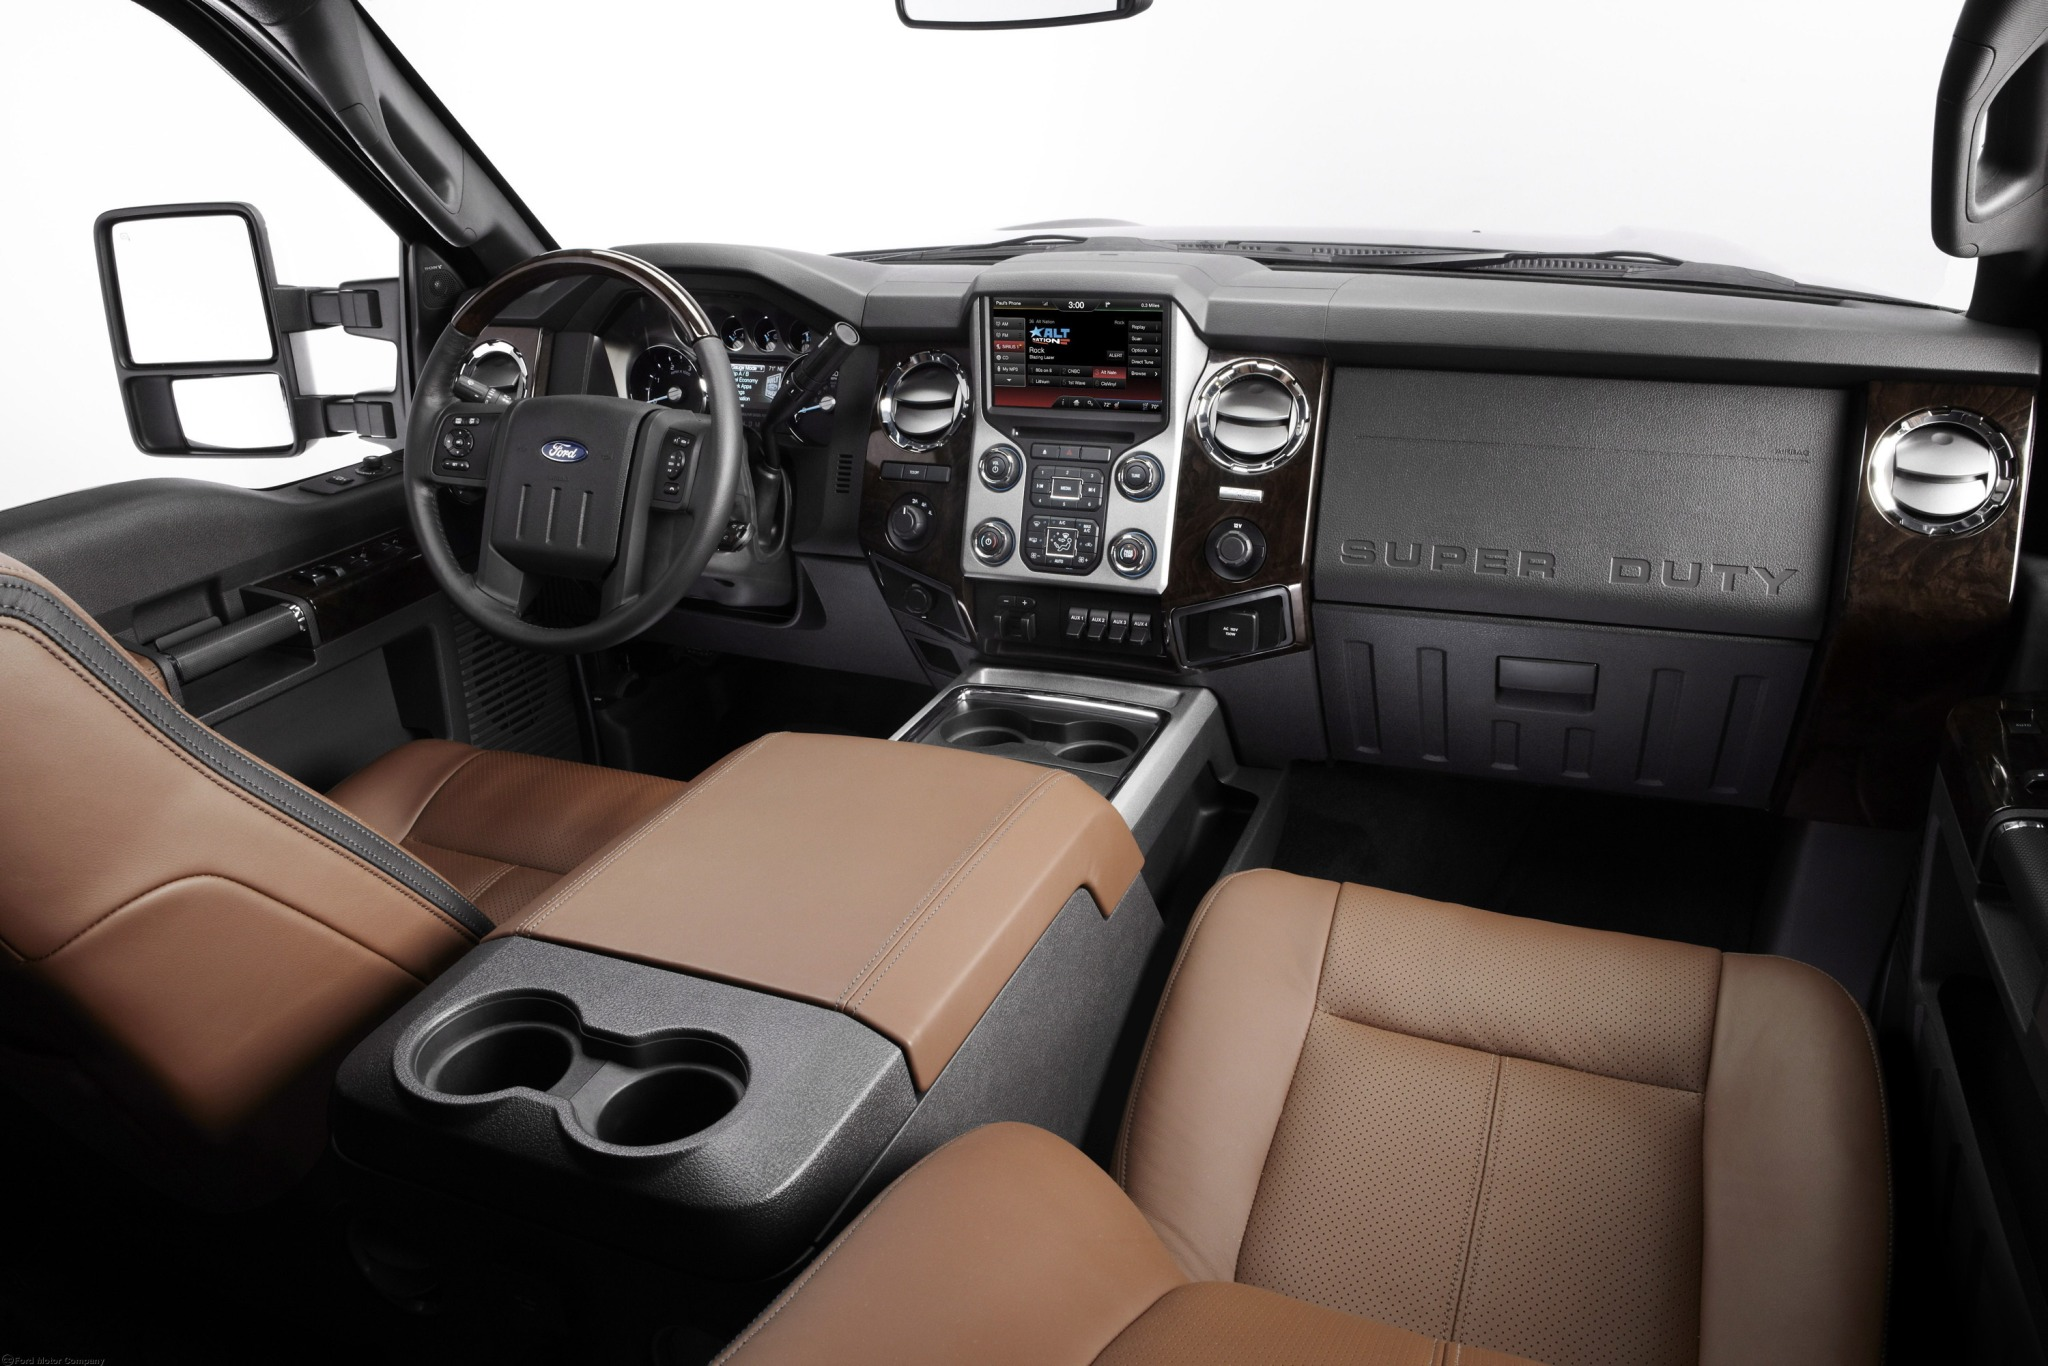 2013 Ford F-350 Super Dut interior #3